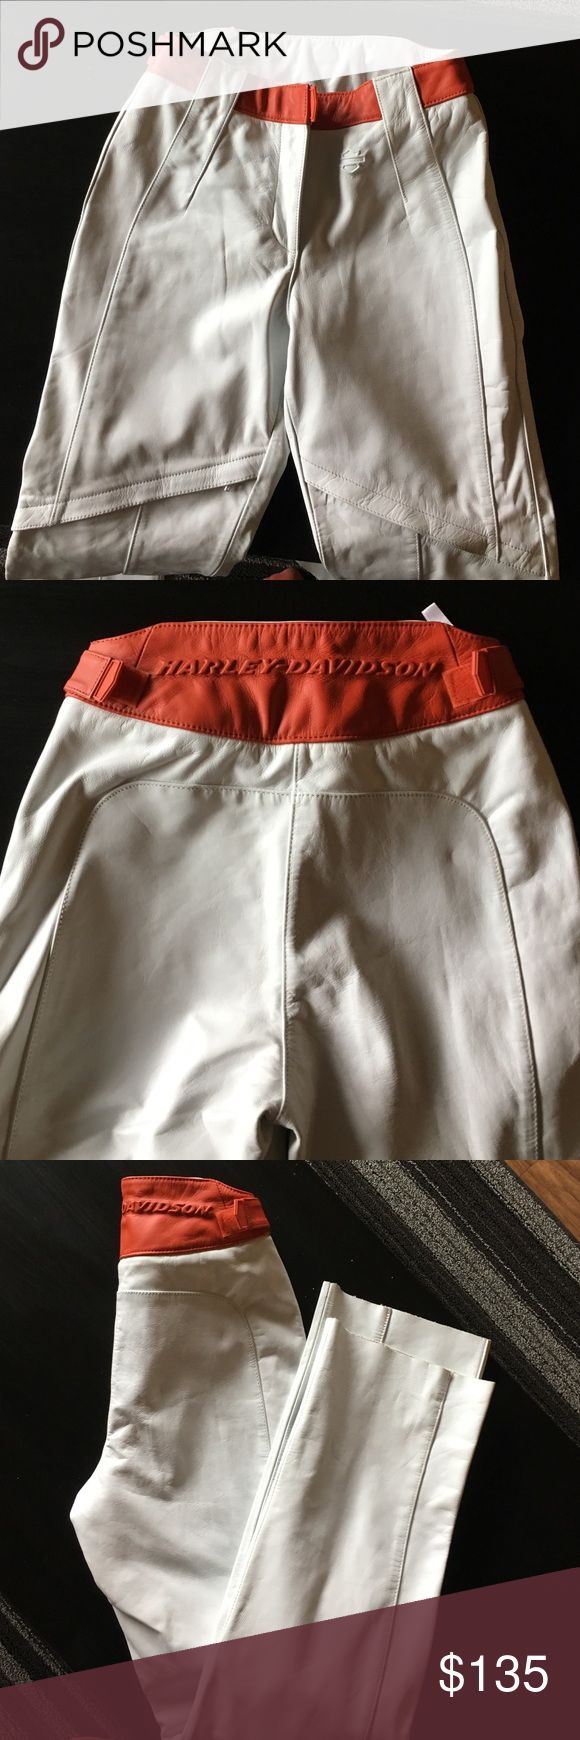 """Women's Harley Davidson White Leather pants Brand new. Never worn (because I didn't have time to hem) size 2. 10"""" rise, 30"""" inseam, 8"""" leg opening. I also have the matching jacket for sale. Harley-Davidson Pants Straight Leg"""